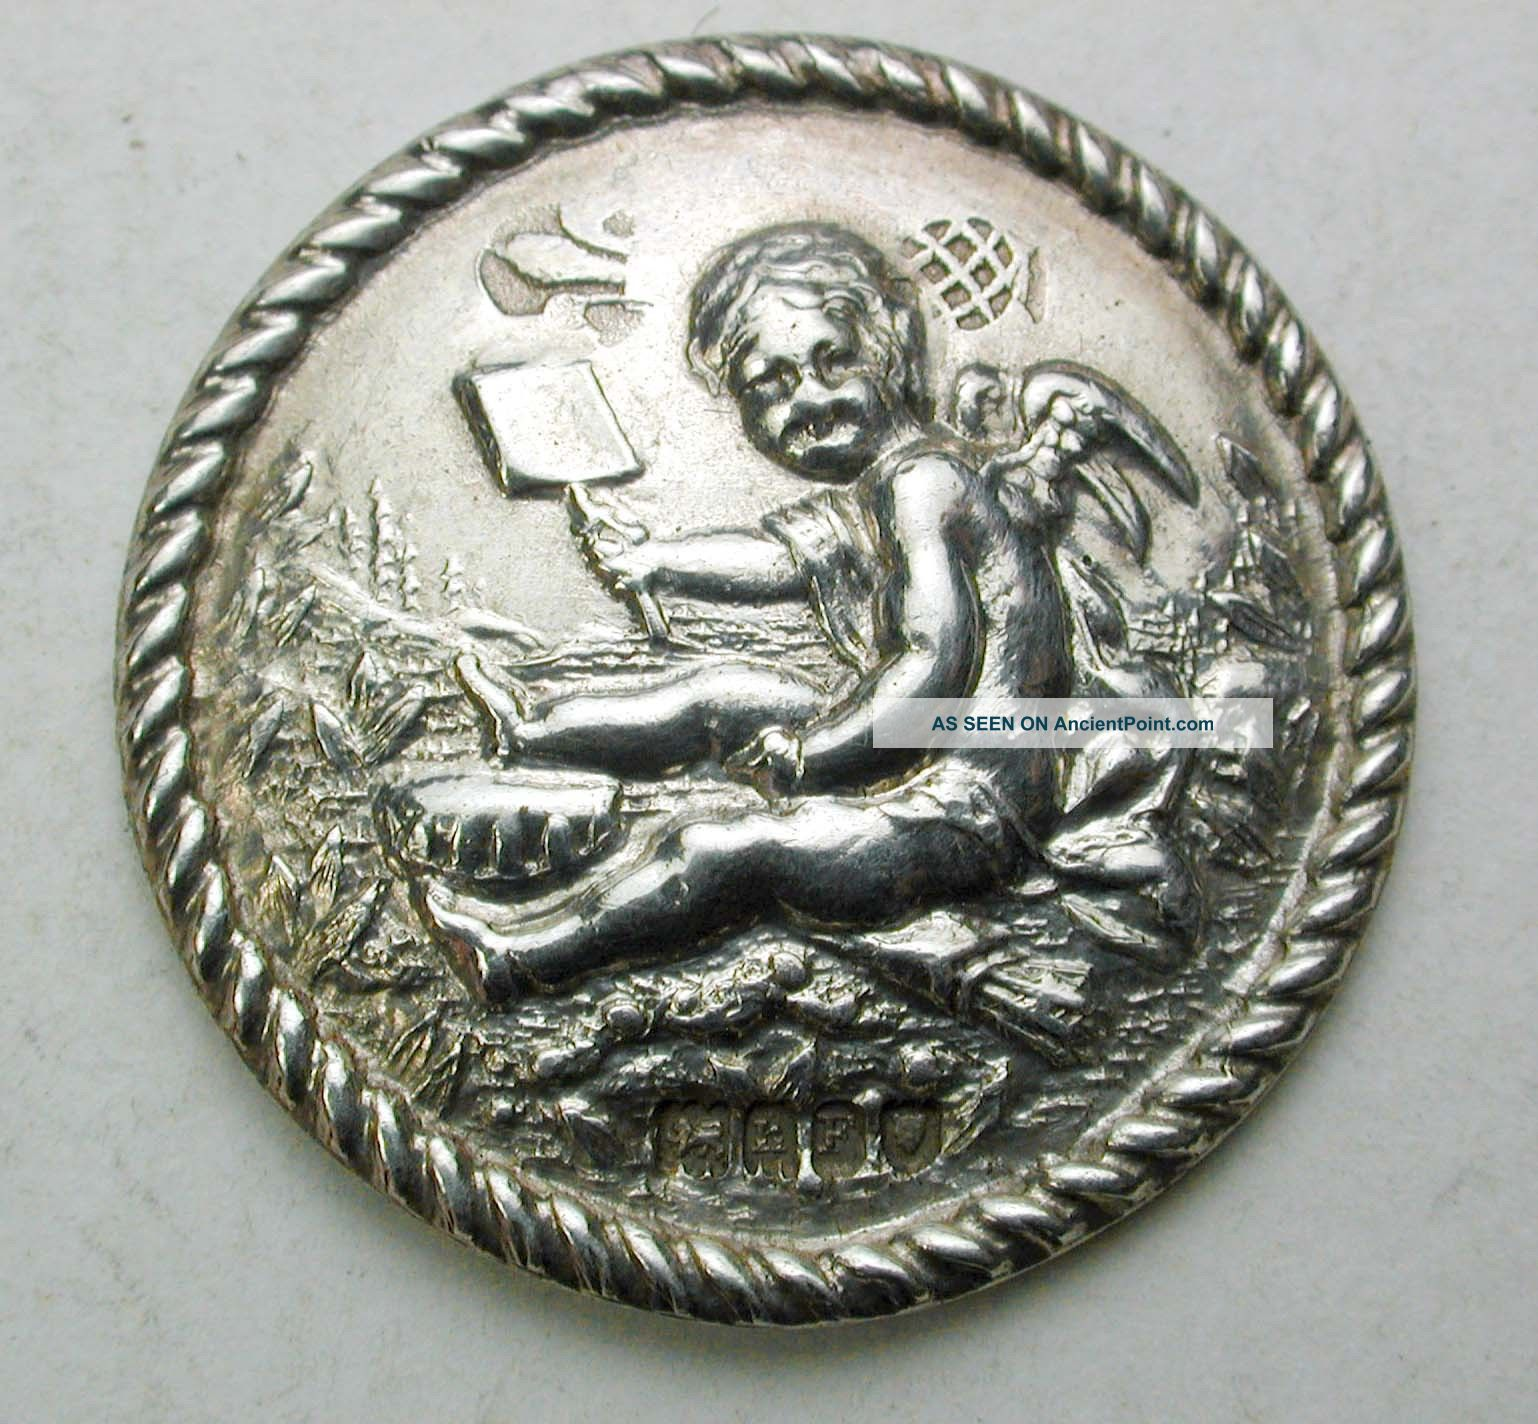 Antique Sterling Silver Button Cherub W/ Shovel Scene - 1